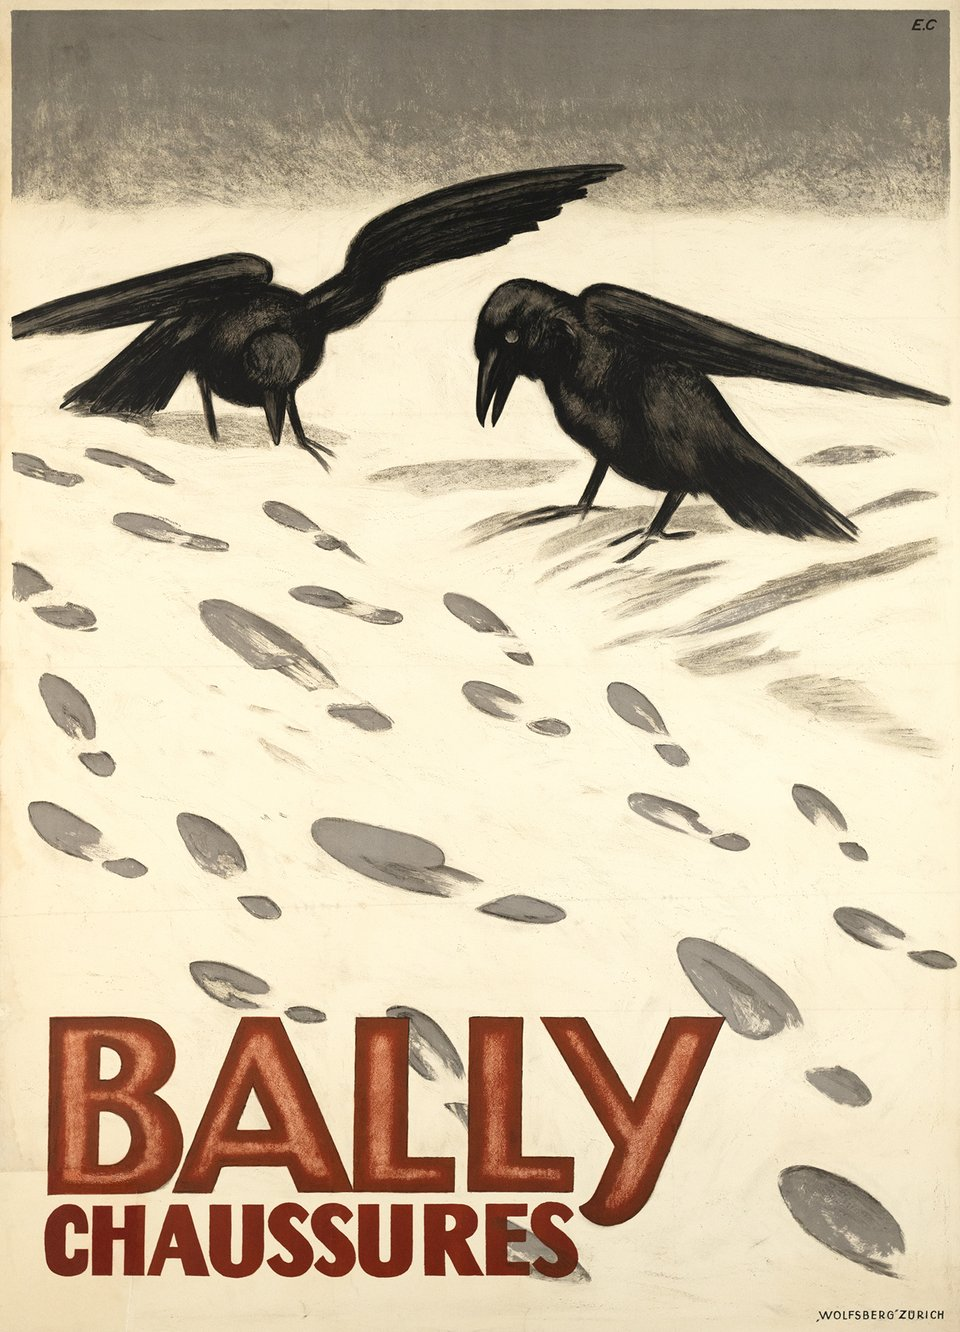 Bally, Chaussures – Vintage poster – Emil CARDINAUX – 1927